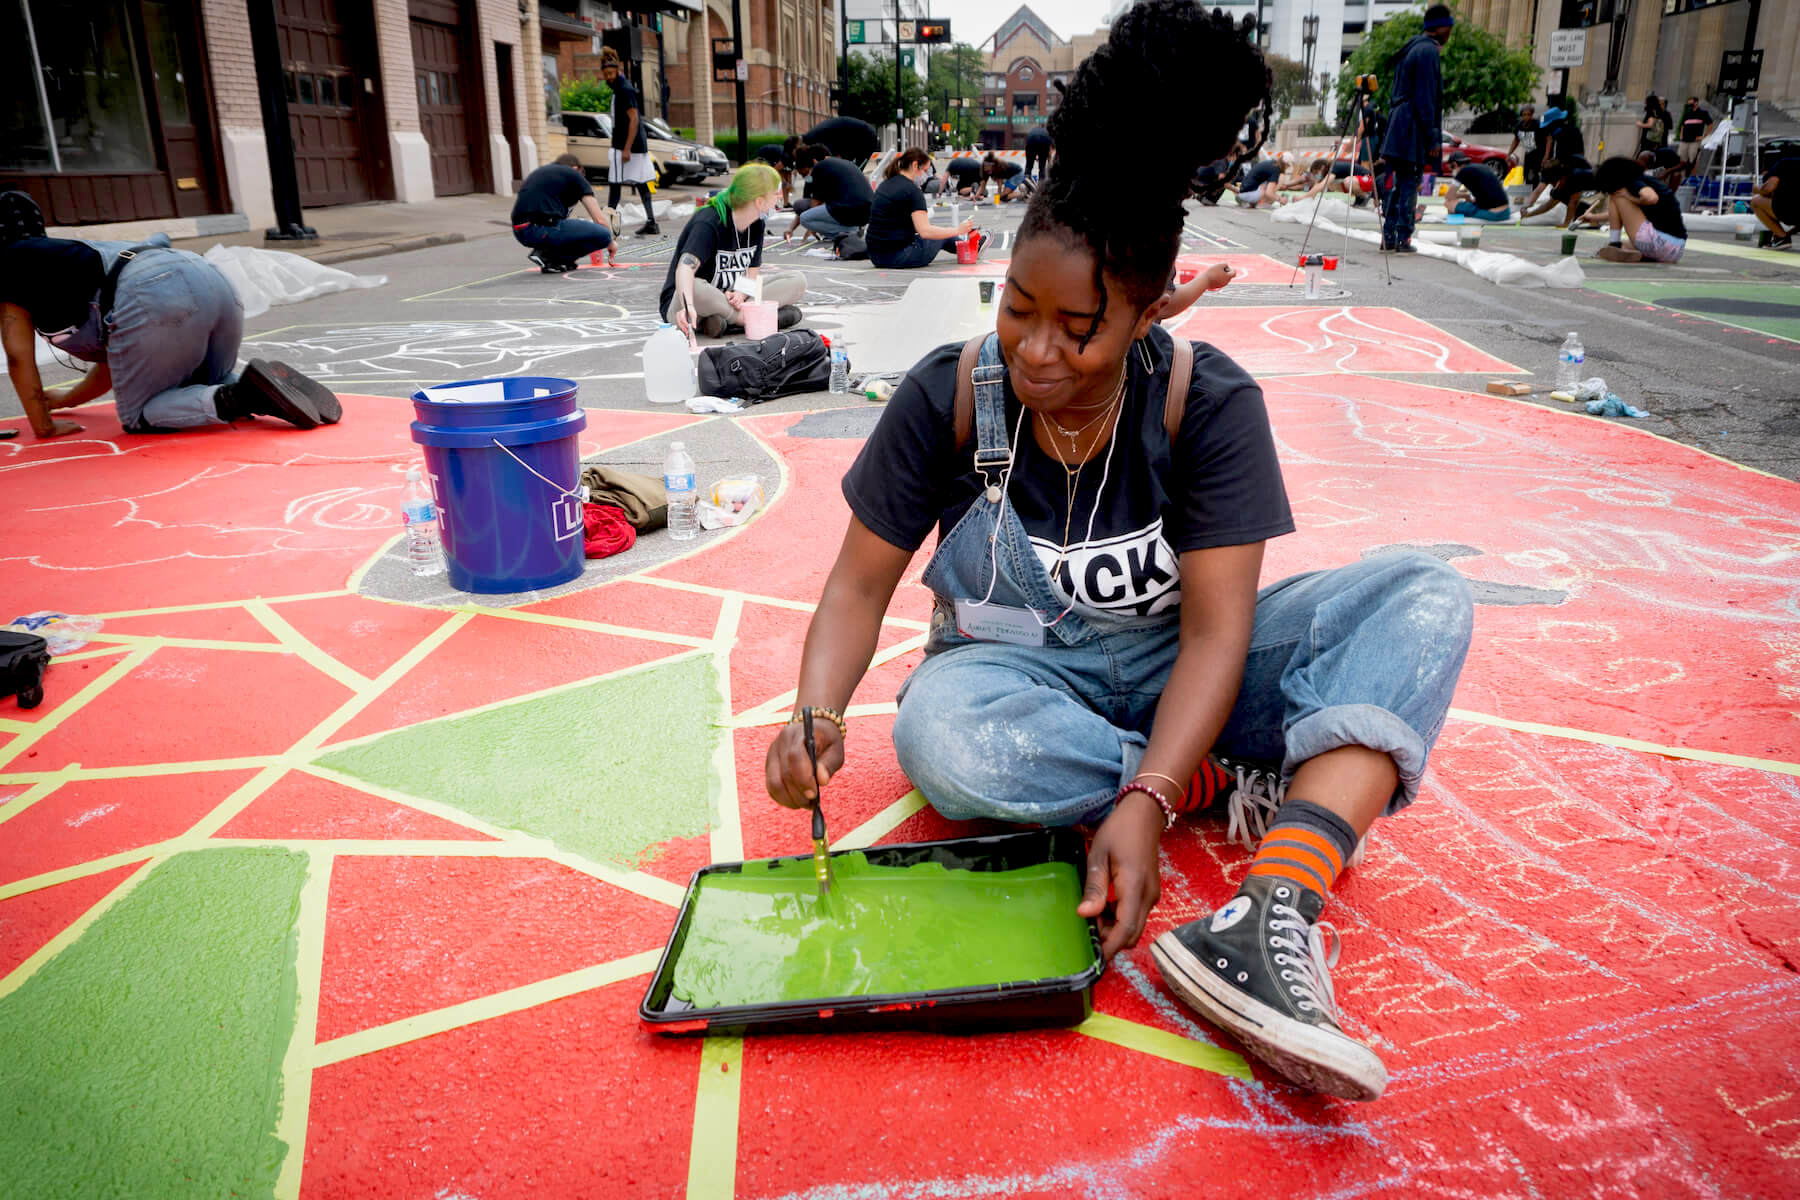 Mural artists collectively create street art in front of city hall